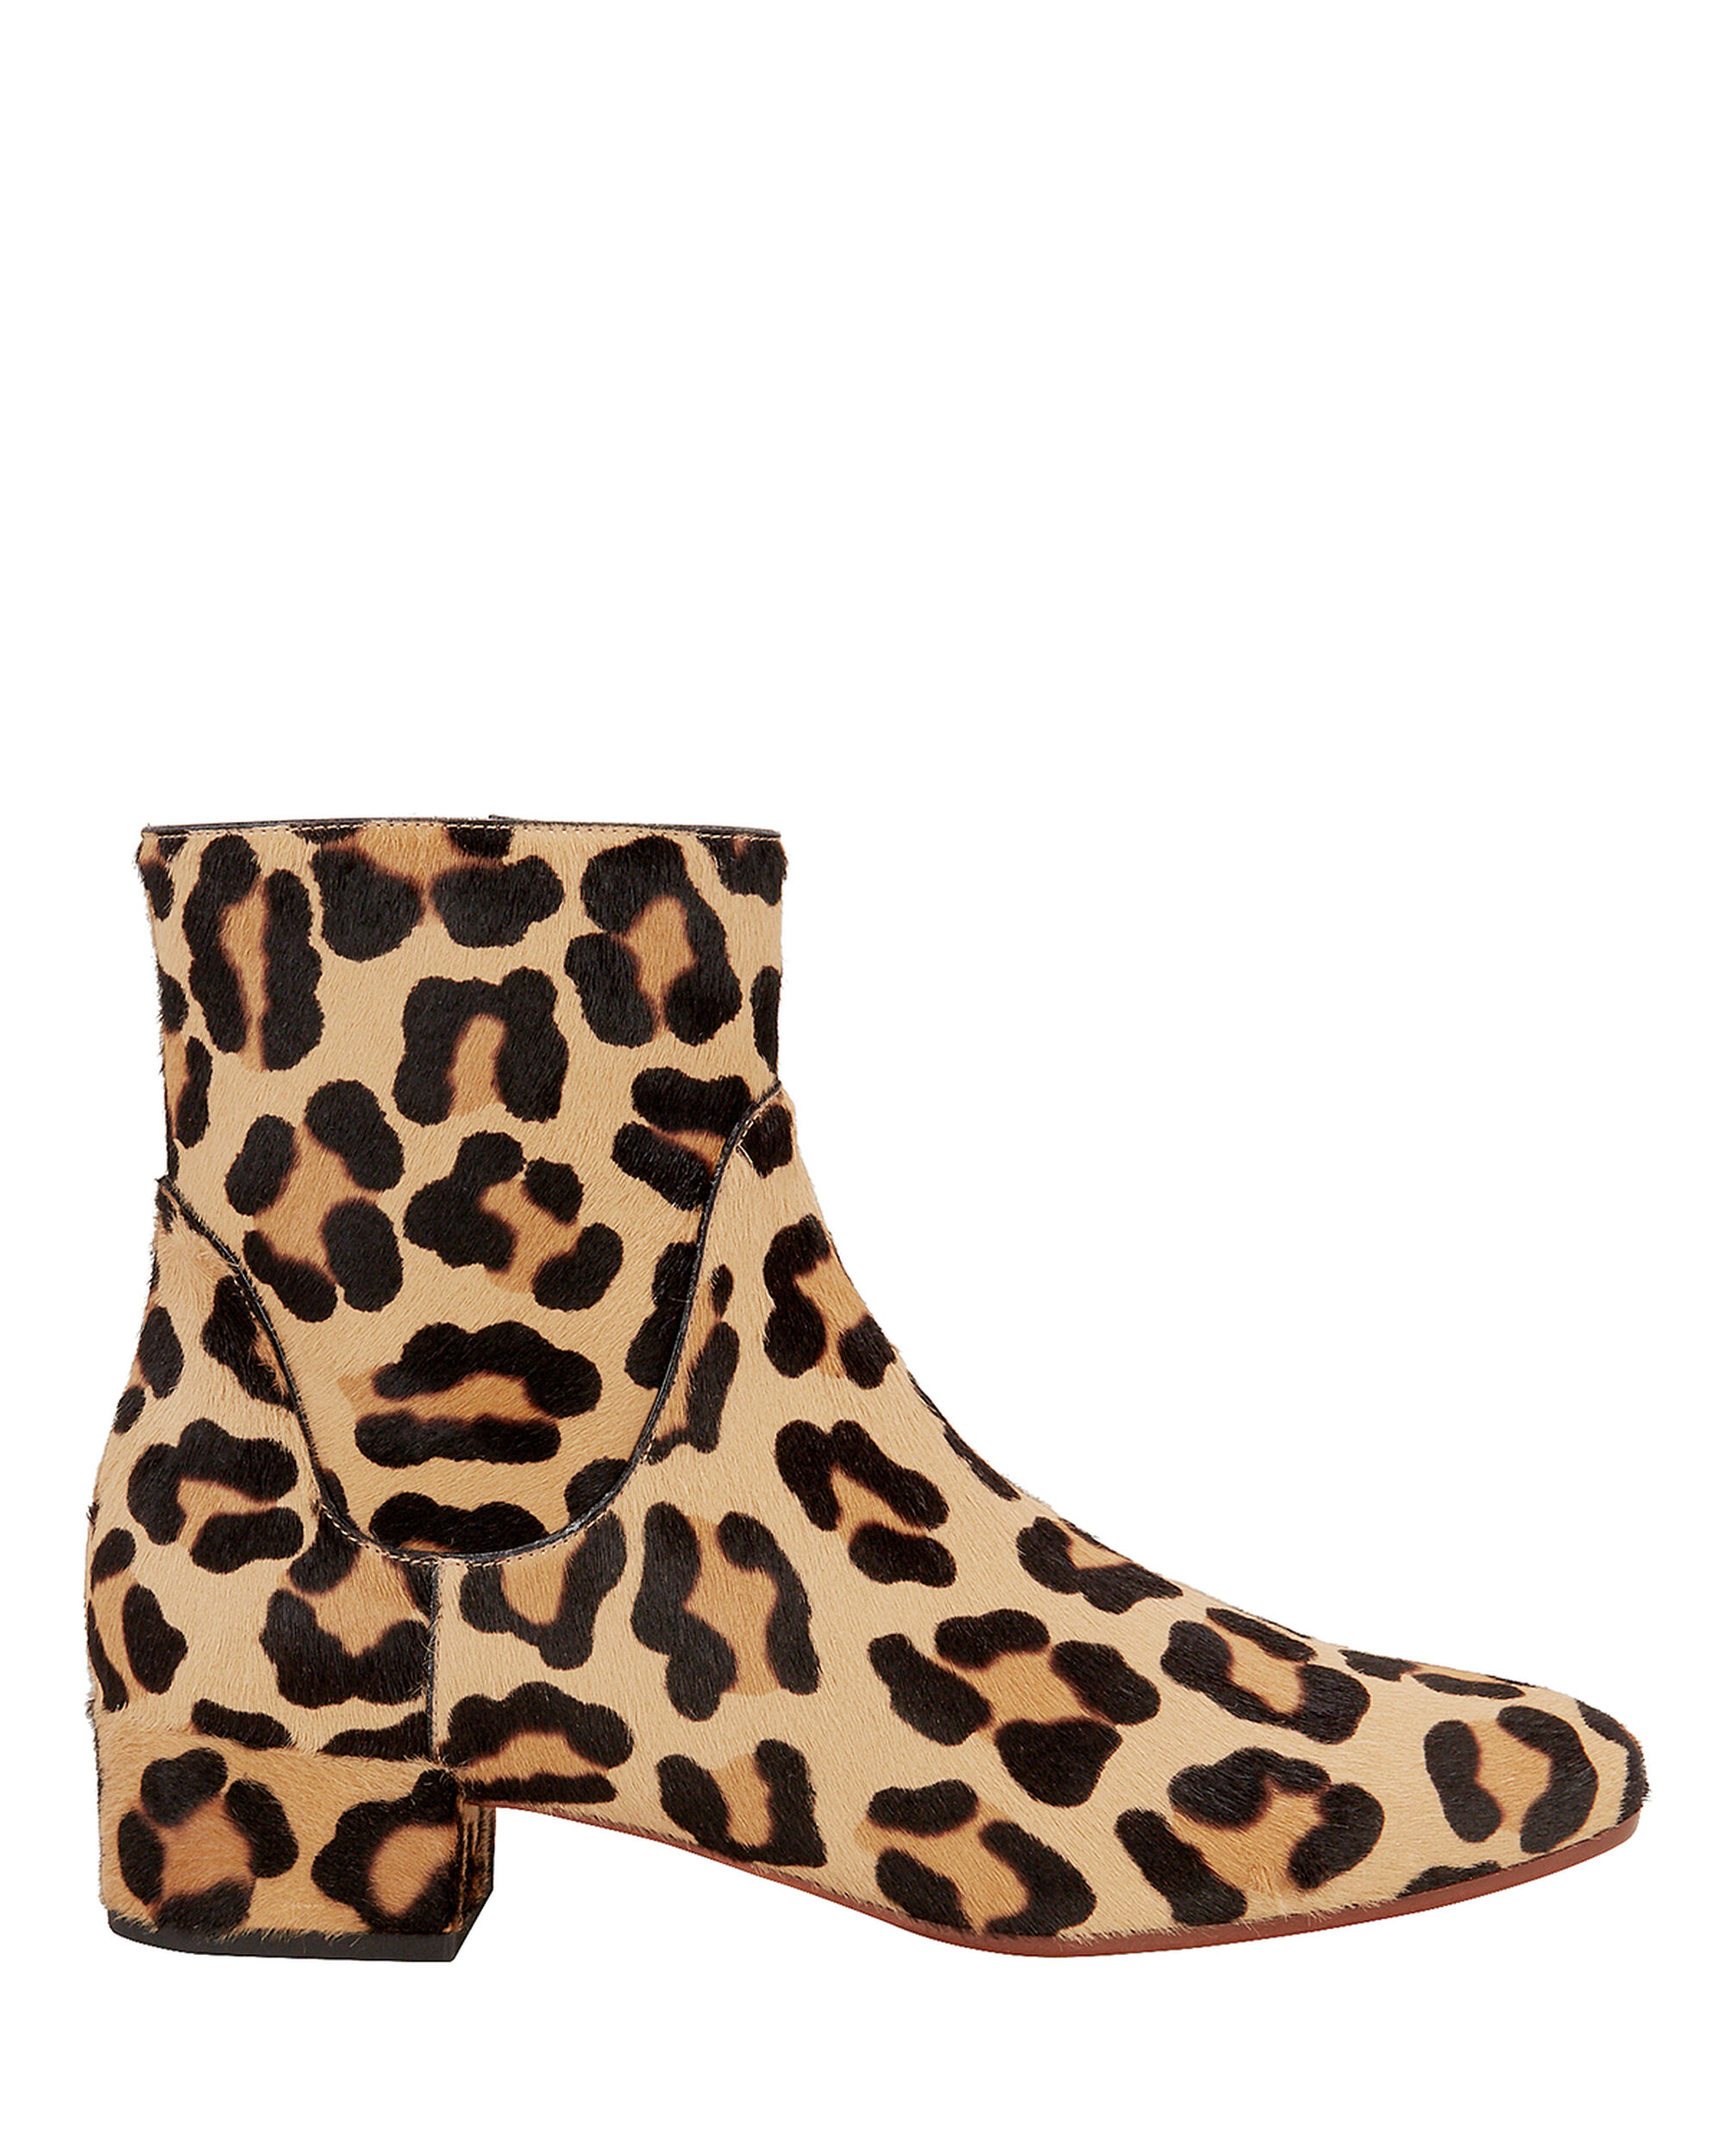 FRANCESCO RUSSO LEOPARD HAIRCALF BOOTIES BROWN